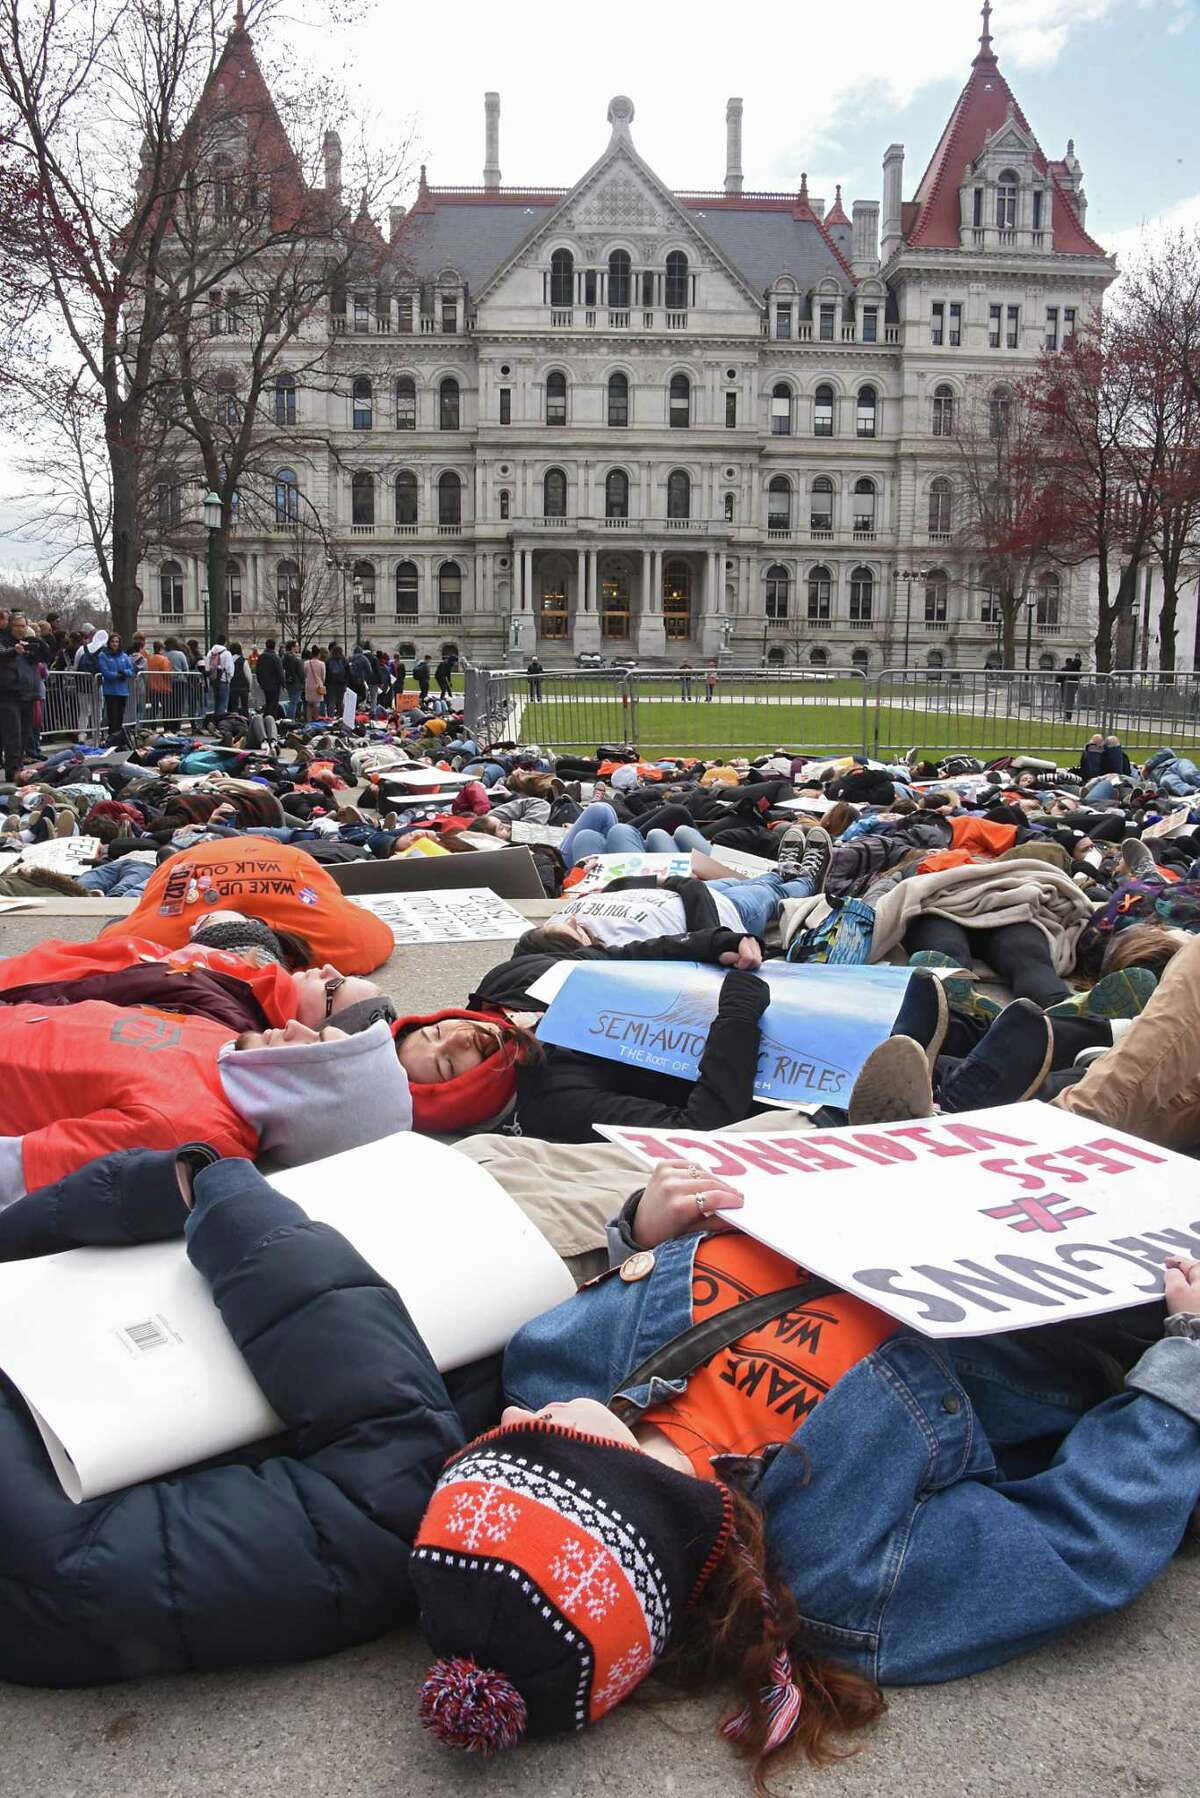 Capital Region high school students protest and rally at the State Capitol for action on stricter gun control measures on the anniversary of the 1999 Columbine High School massacre in Colorado on Friday, April 20, 2018 in Albany, N.Y. (Lori Van Buren/Times Union)